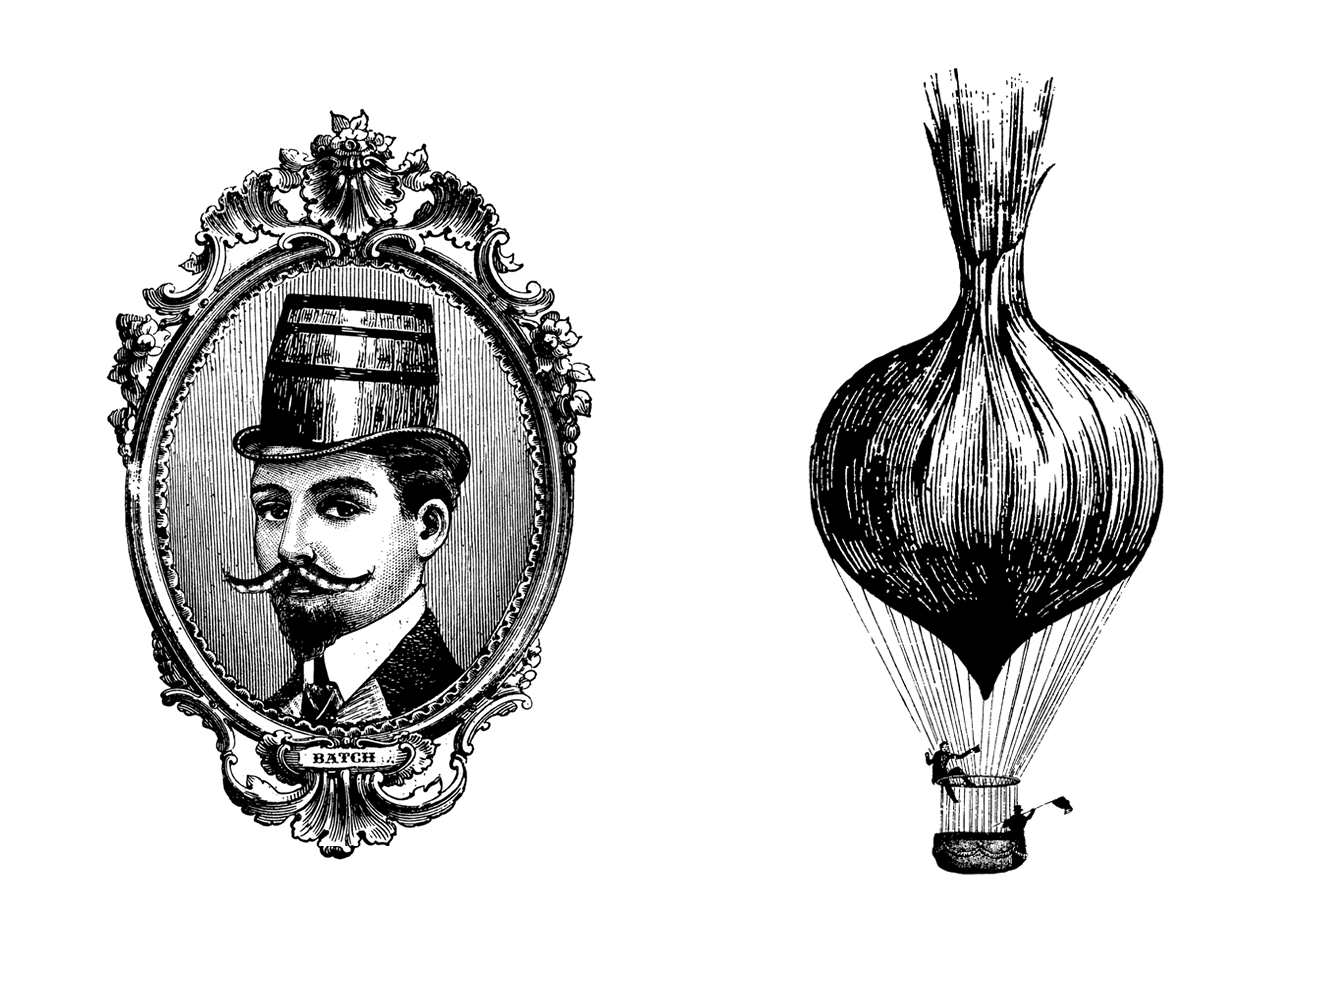 Small Batch Illustrations: Onion Balloon